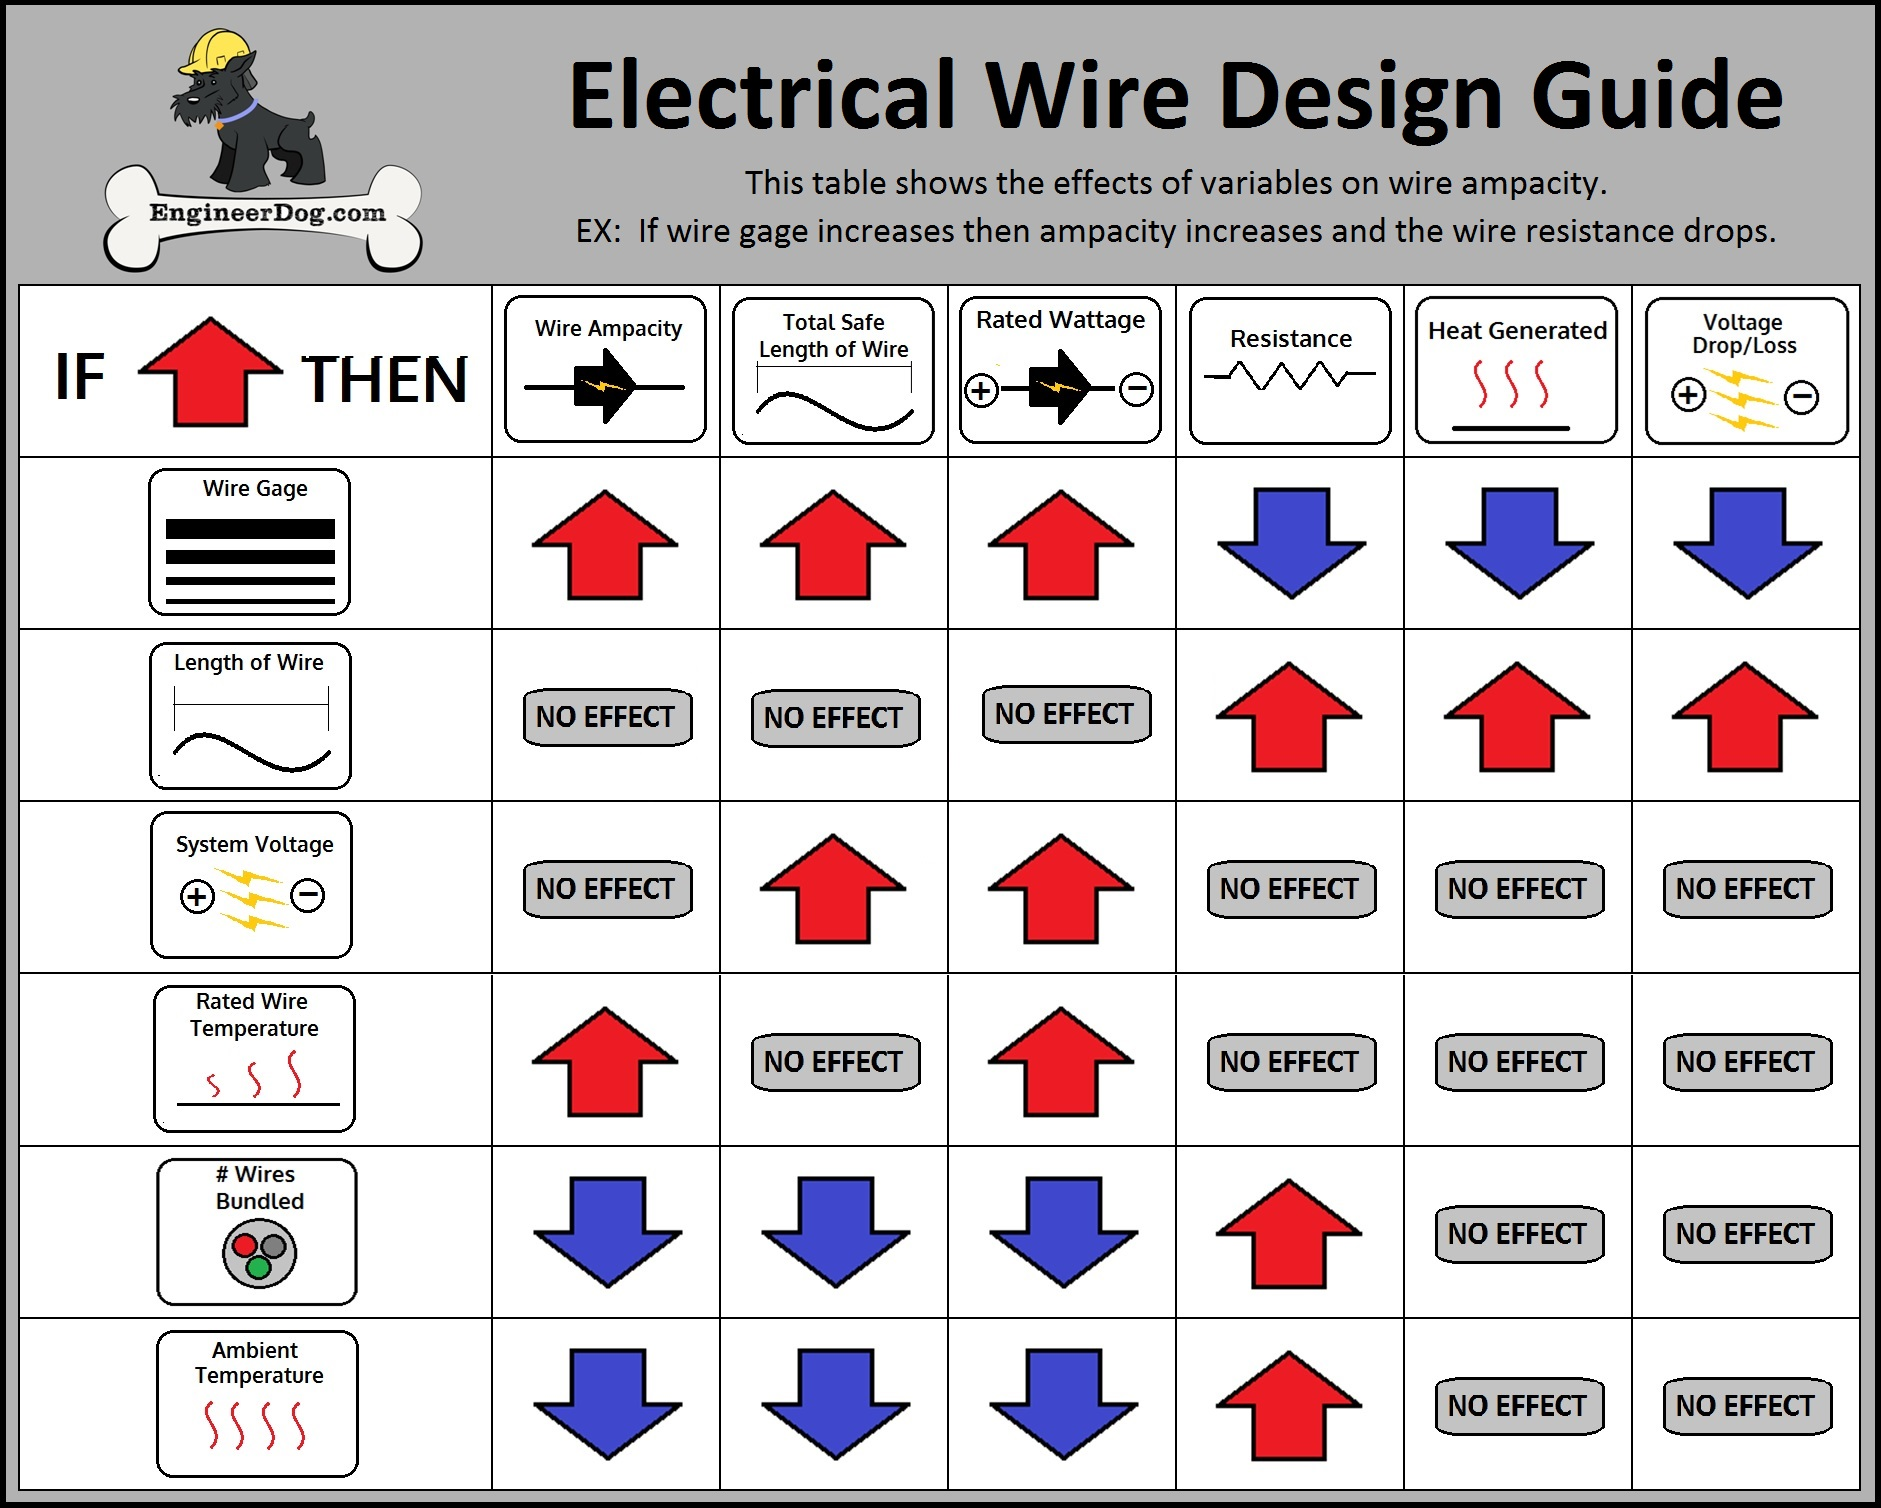 Wire amp guide today manual guide trends sample free electrical wire gauge sizing calculator engineerdog rh engineerdog com 100 amp wire size chart wire gauge amp chart greentooth Gallery